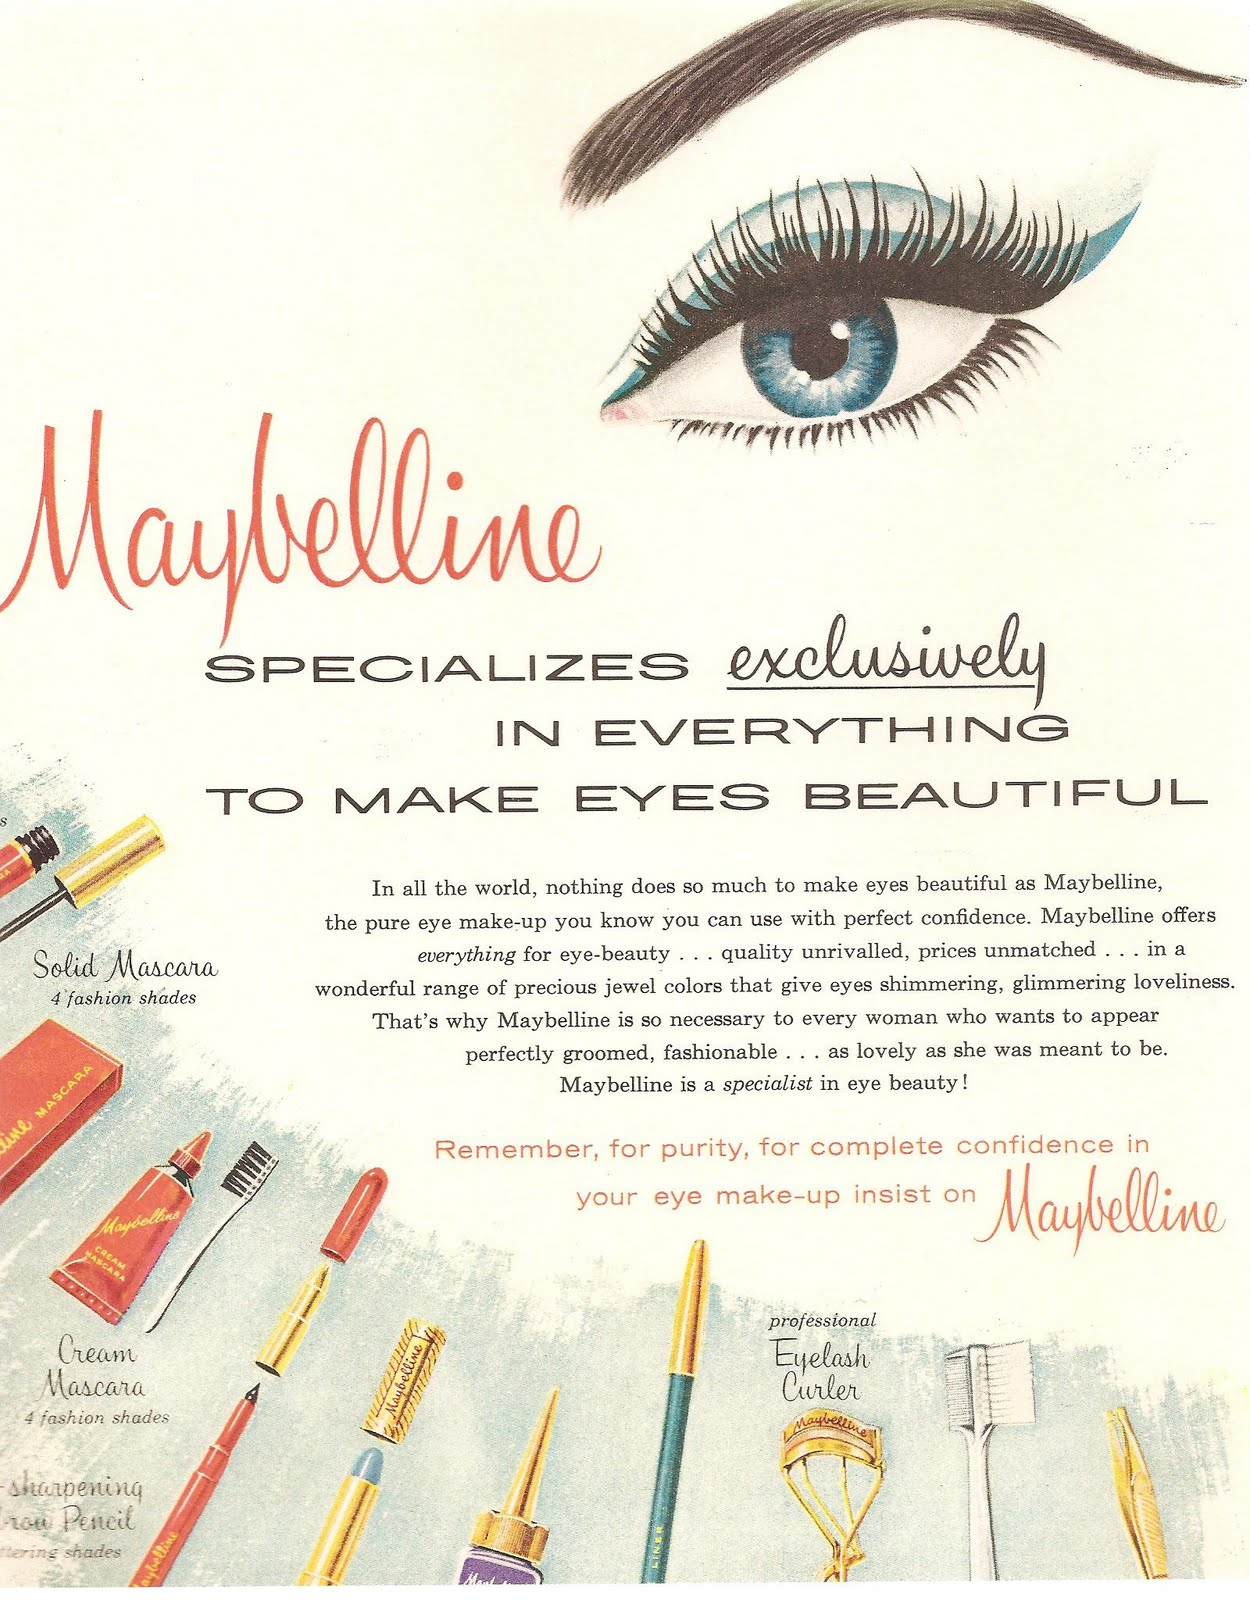 maybelline 1963